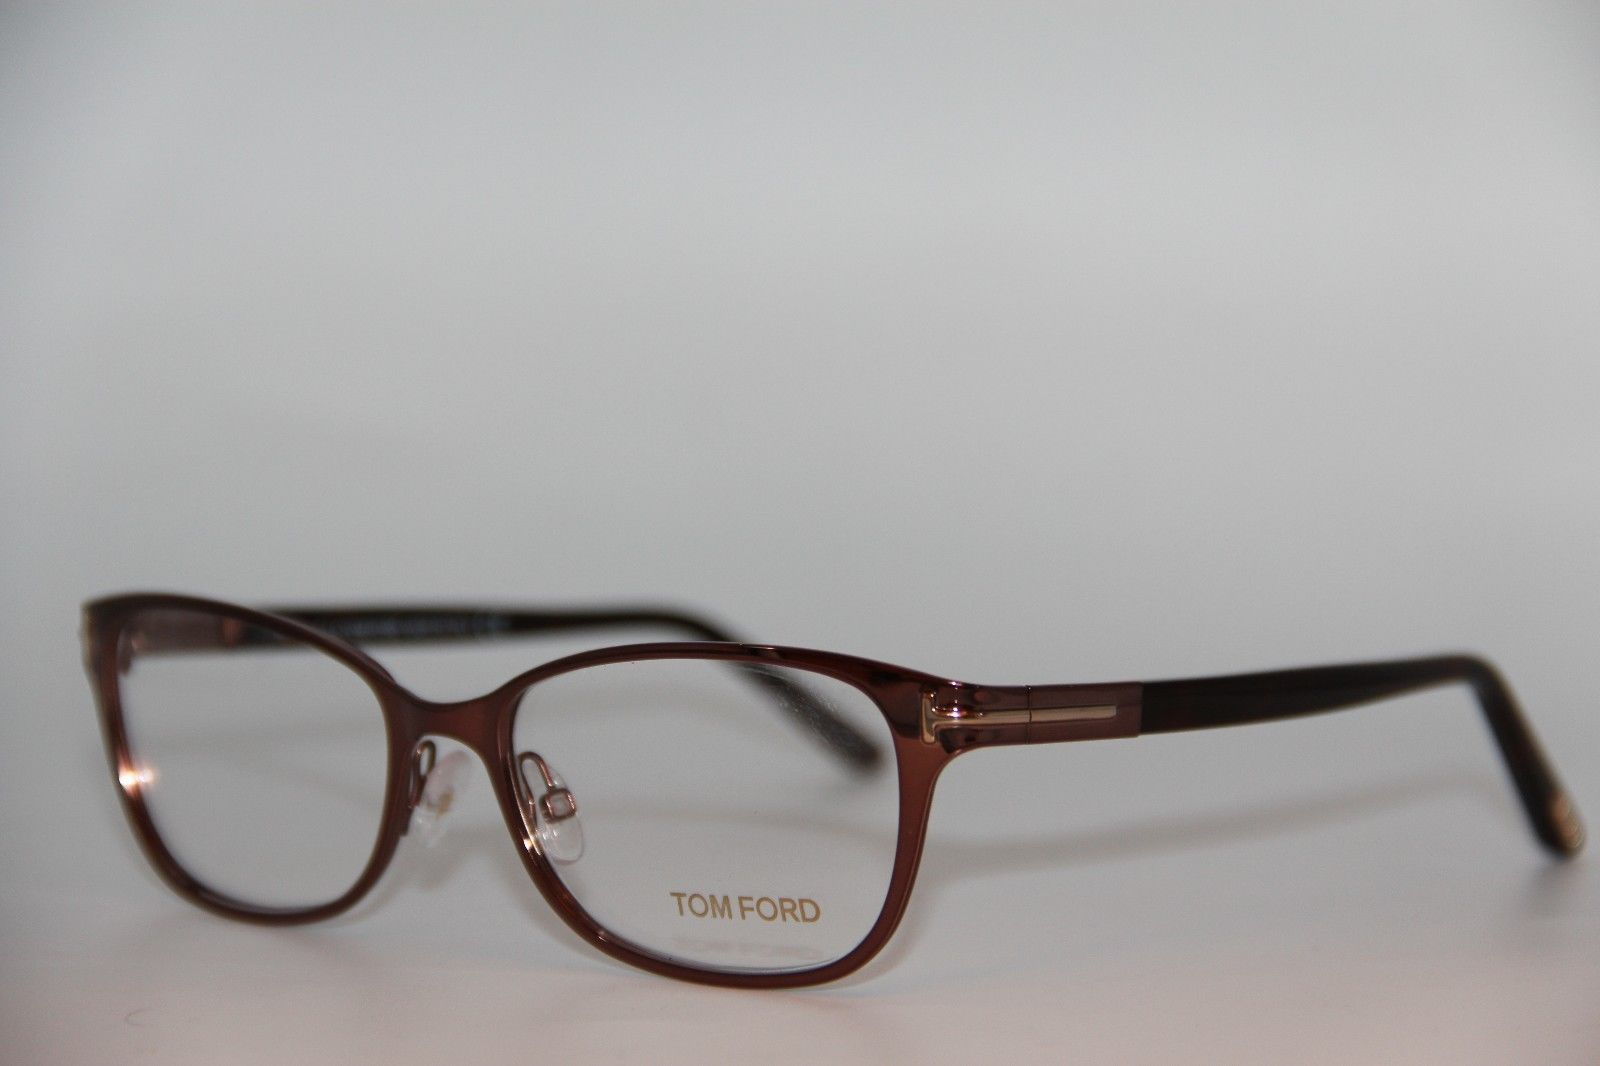 9bb1ff3761f58 New Tom Ford Tf 5282 048 Brown Eyeglasses and 50 similar items. 57